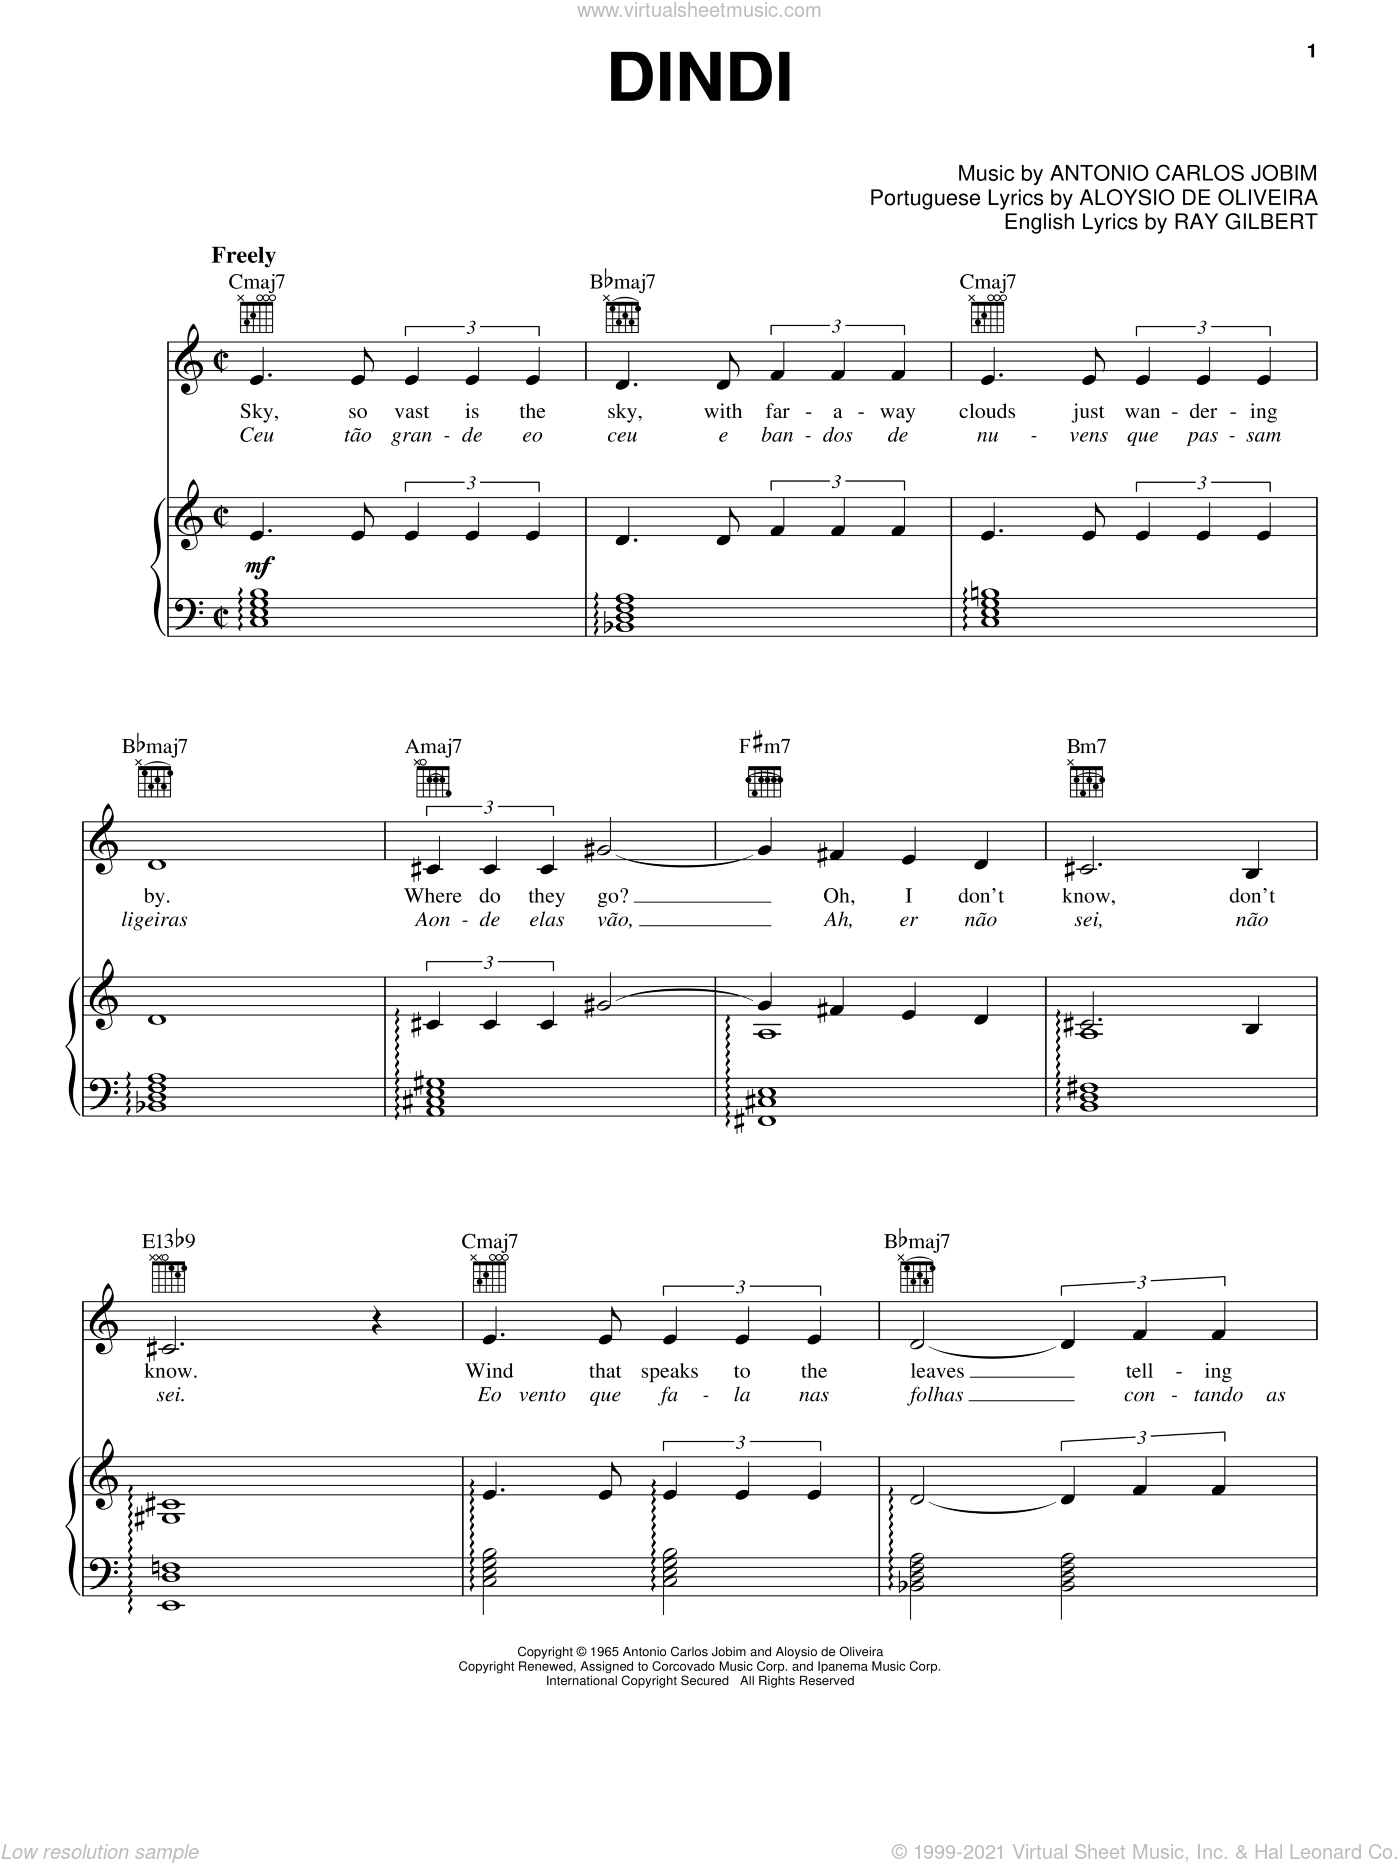 Dindi sheet music for voice, piano or guitar by Antonio Carlos Jobim, Frank Sinatra, Aloysio de Oliveira and Ray Gilbert, intermediate skill level